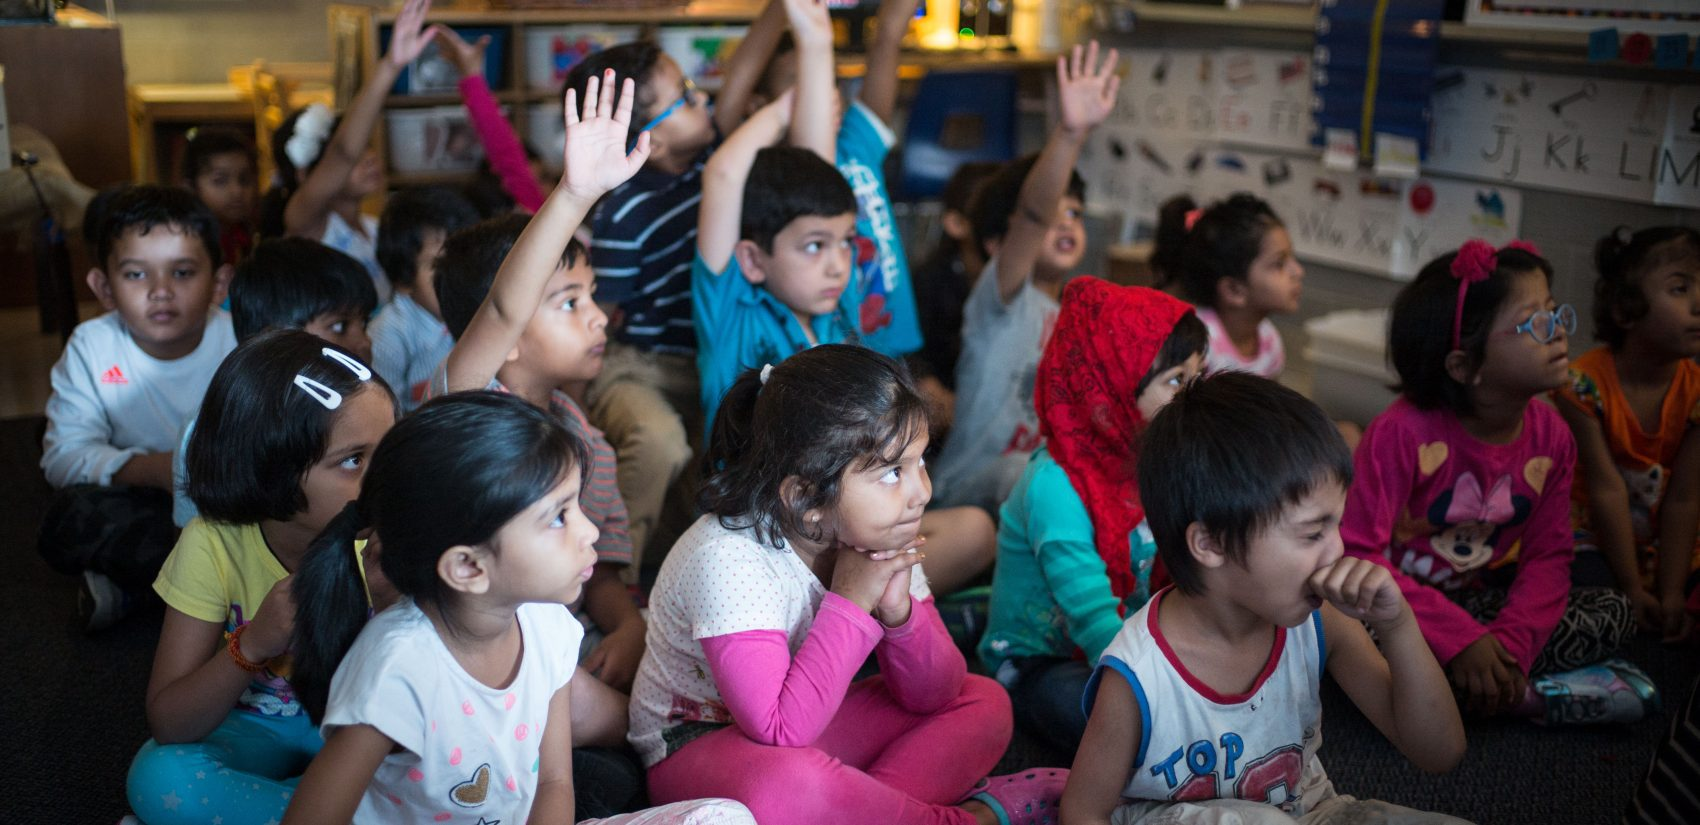 A kindergarten class at Crescent Town Elementary School in Toronto, Ontario, Canada. (Ian Willms/For Keystone Crossroads)